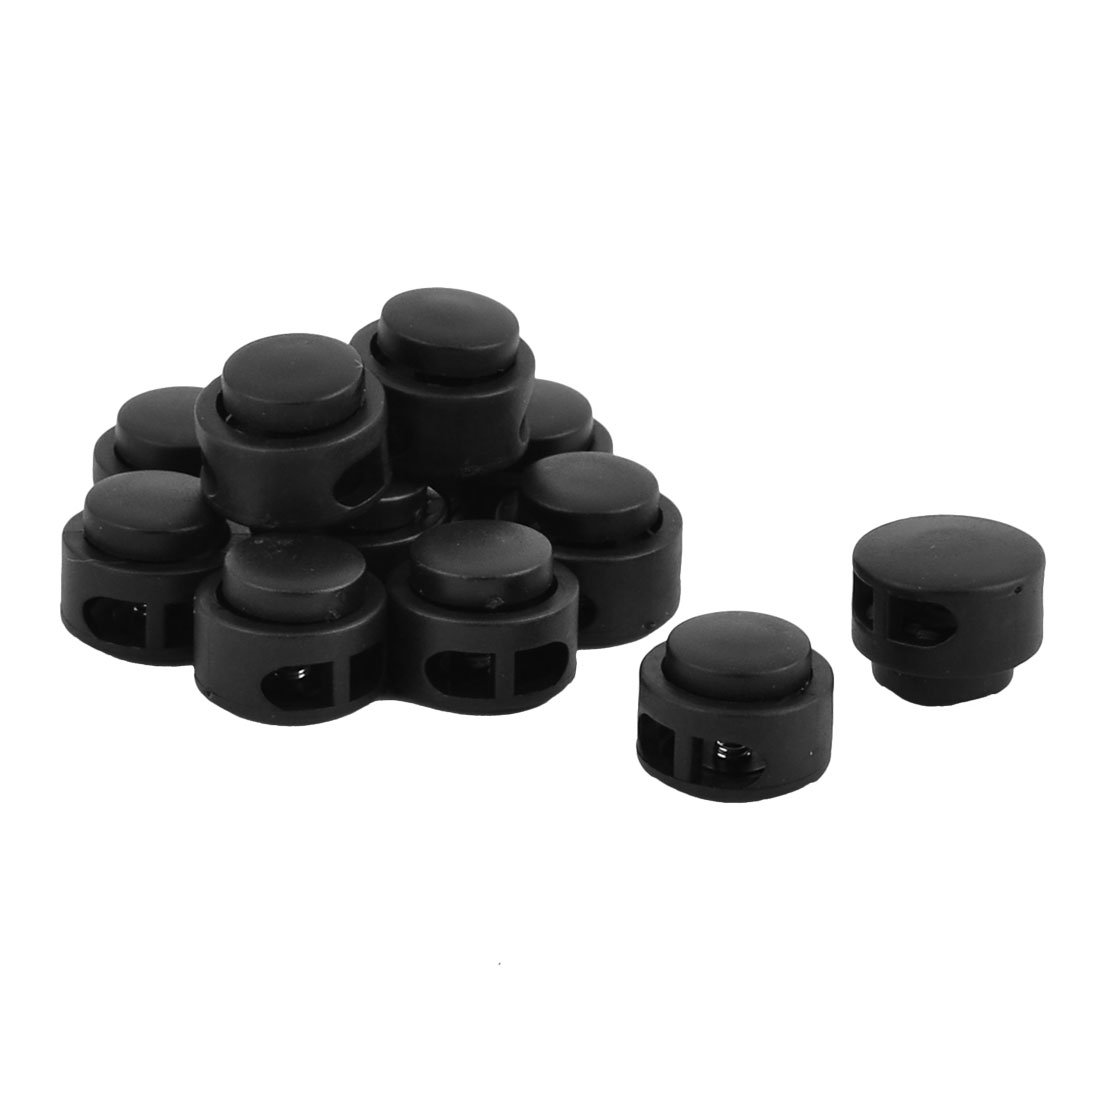 uxcell Plastic Outdoor Cylinder Double Holes Bag Clothes Cord Lock Stopper Fastener 12pcs